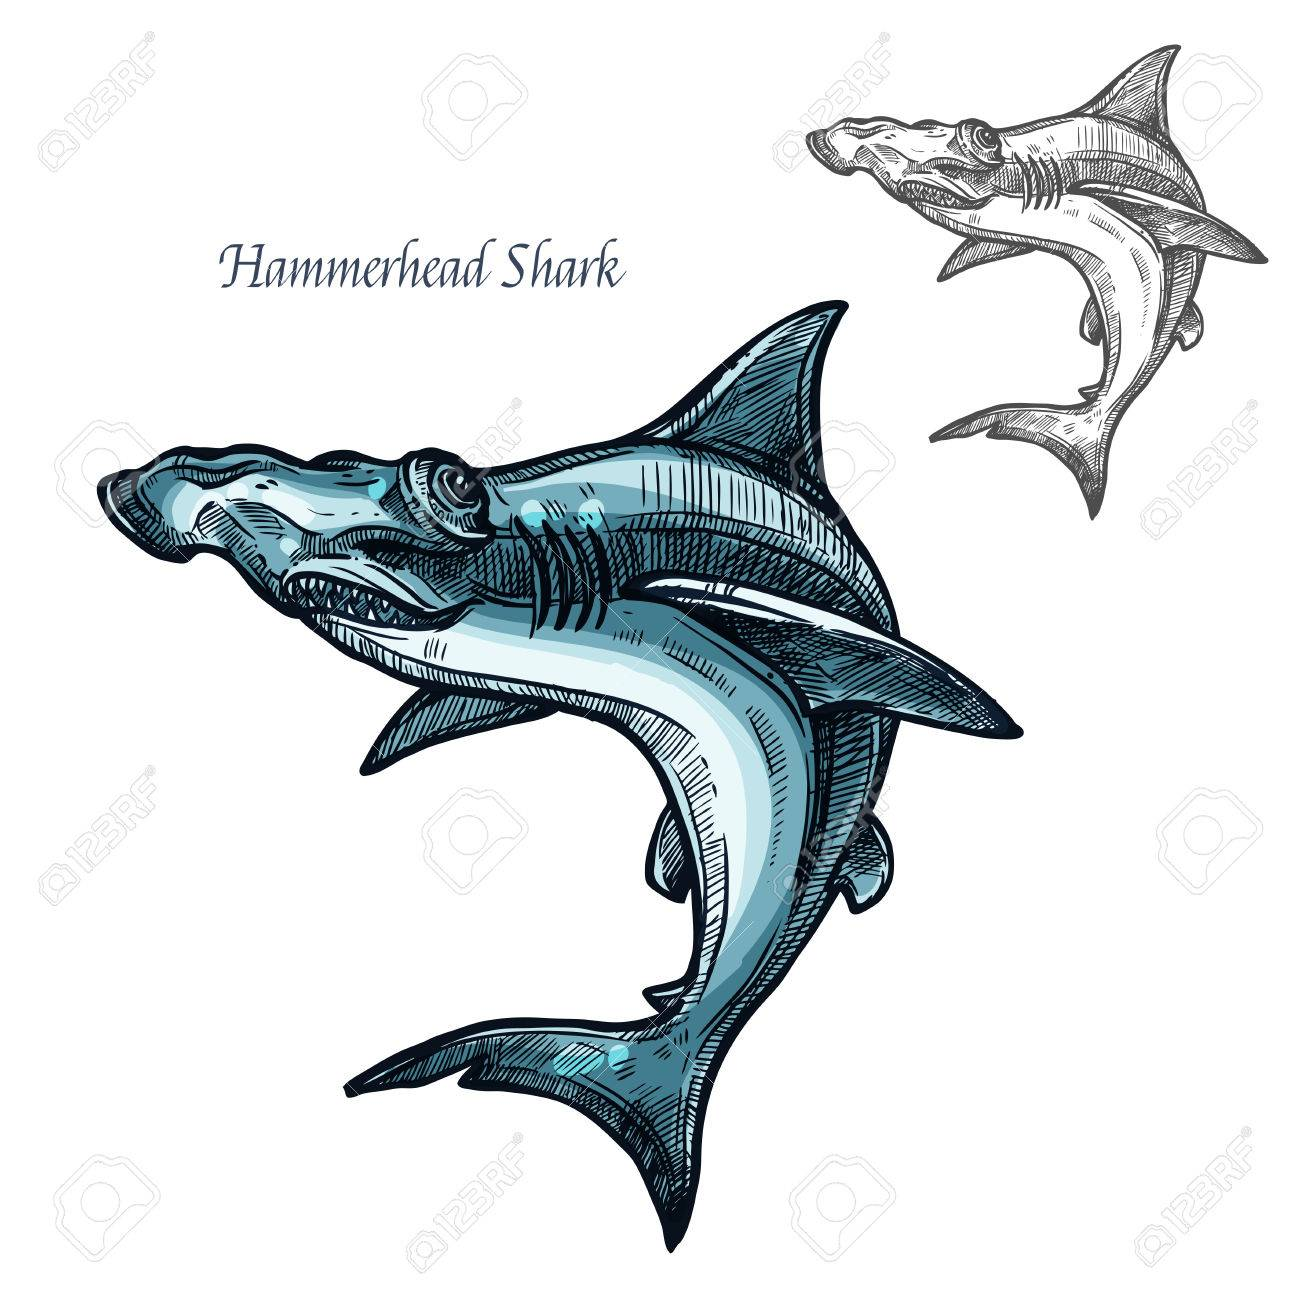 hight resolution of hammerhead shark sketch vector fish icon isolated ocean predatory winghead shark fish species isolated